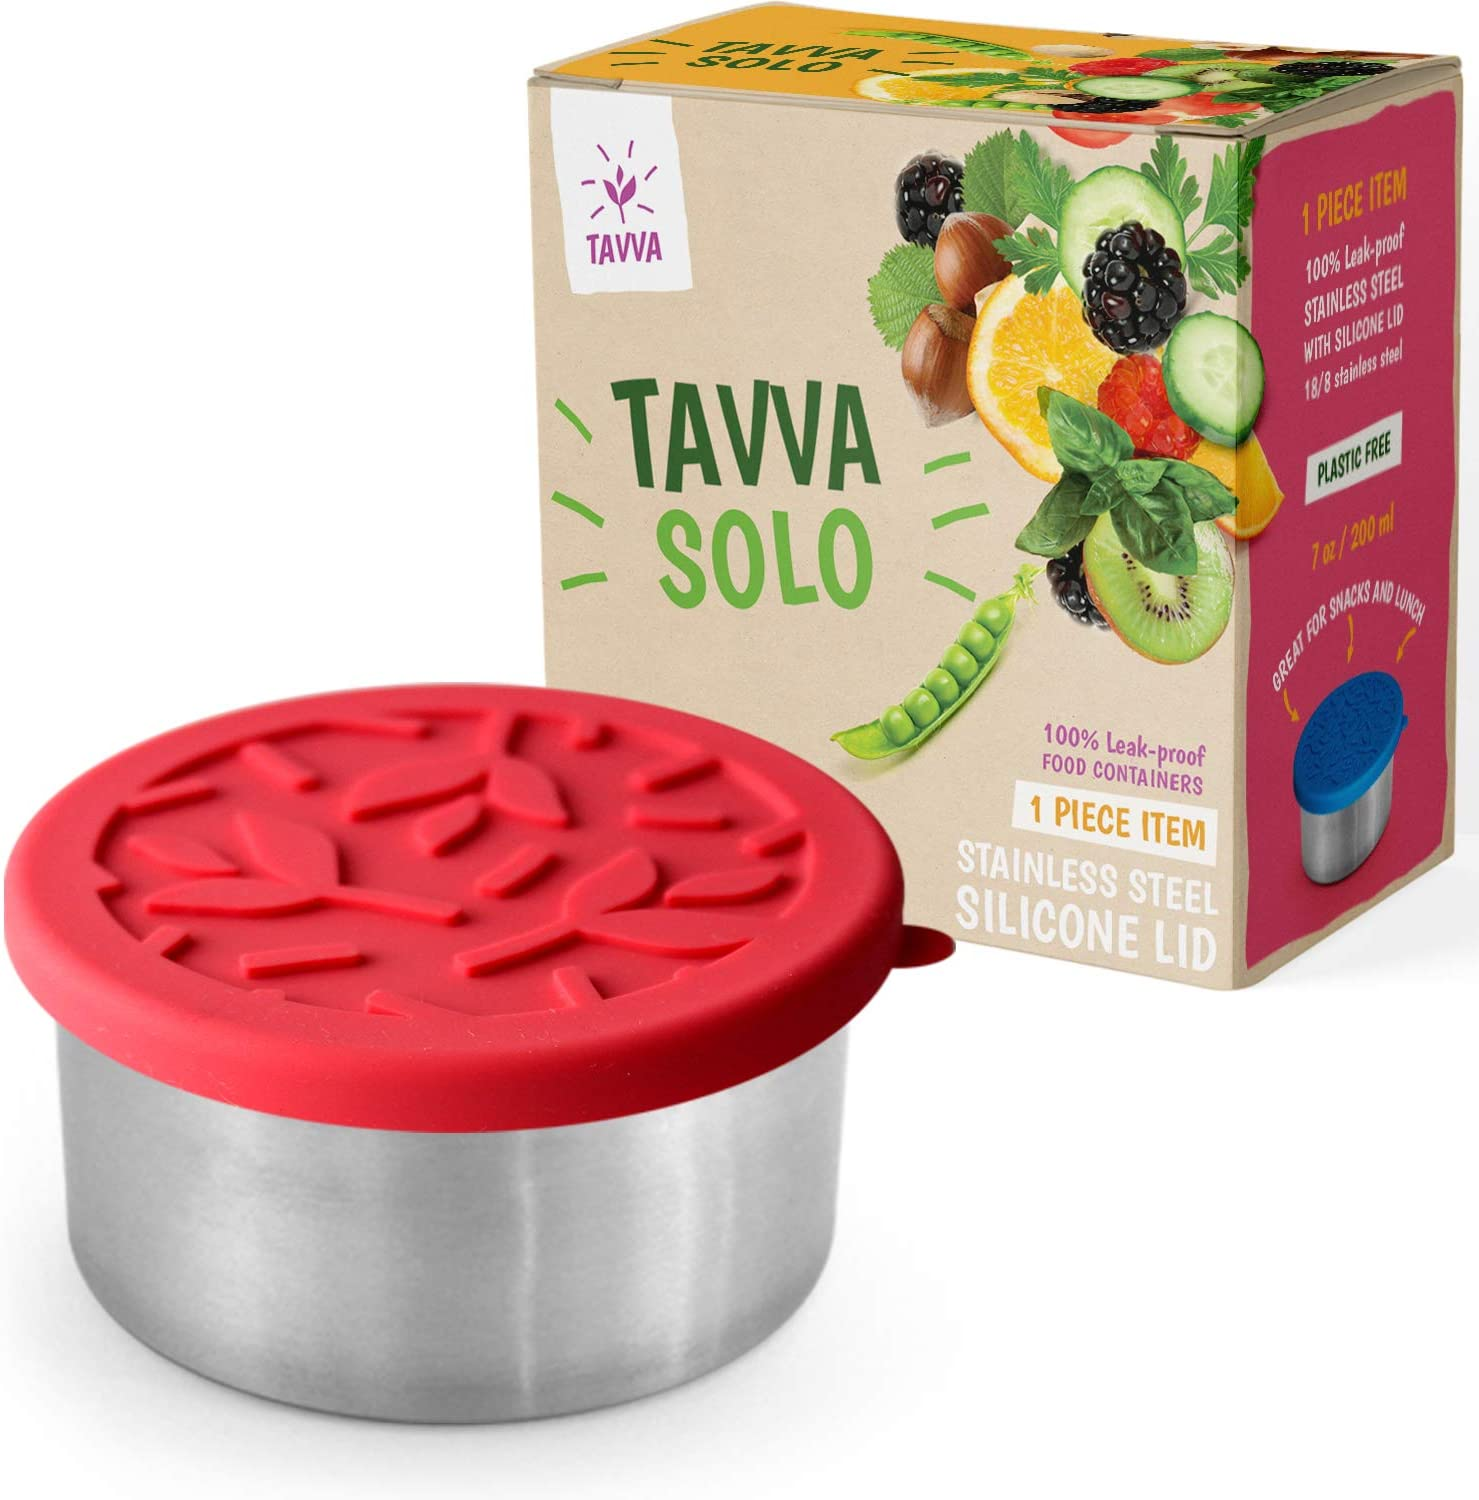 TAVVA Stainless Steel Food Container 7oz - Premium Stainless Steel Container with Food-grade Silicone Lid - Leakproof, Easy to Open – Also Suitable as Toddler Lunch Box and Kids Lunch box